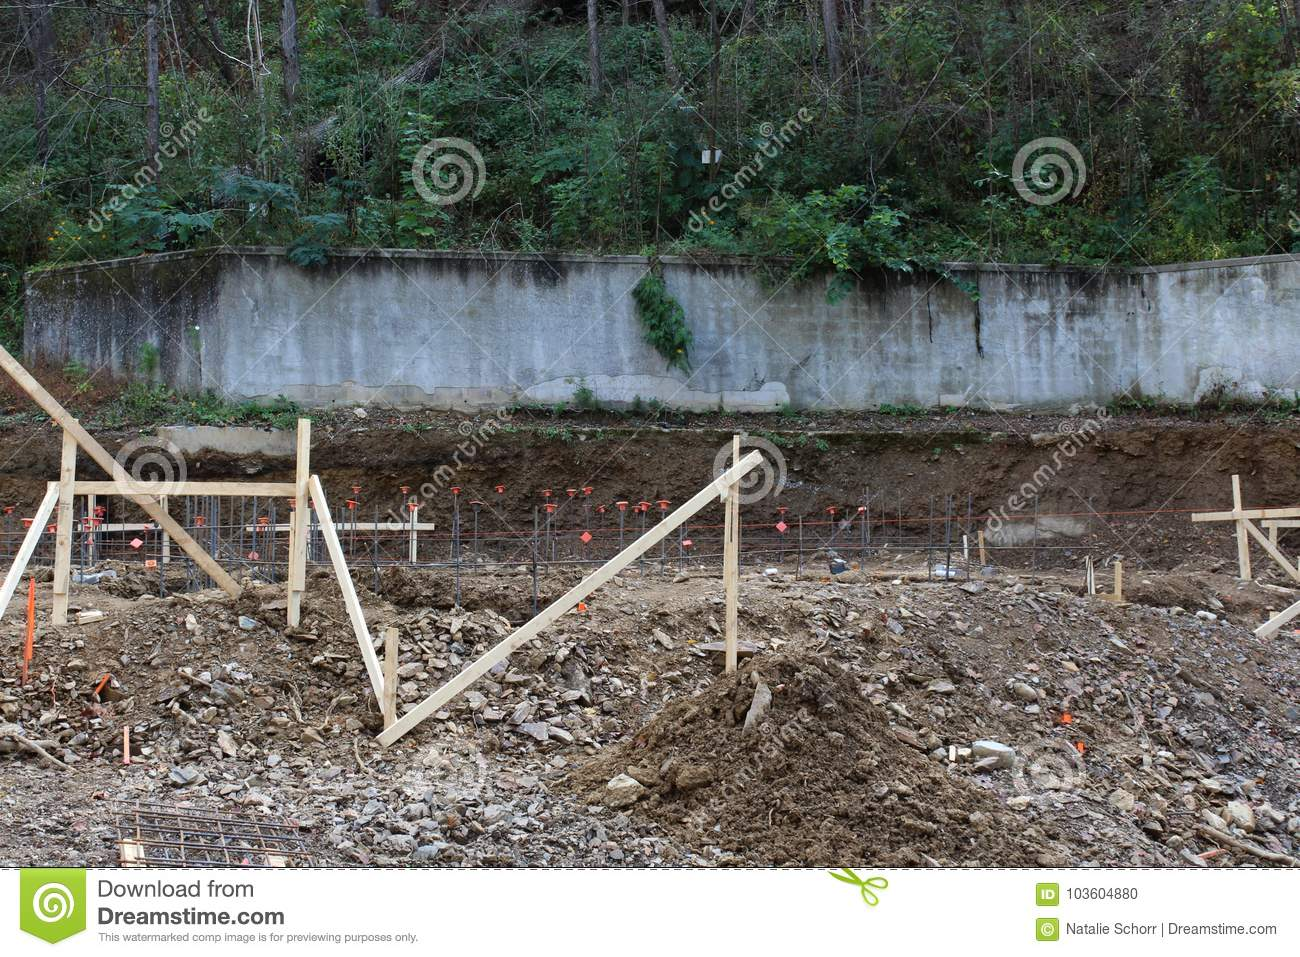 Construction site view of concrete retaining wall on hillside behind dug footings and rebar